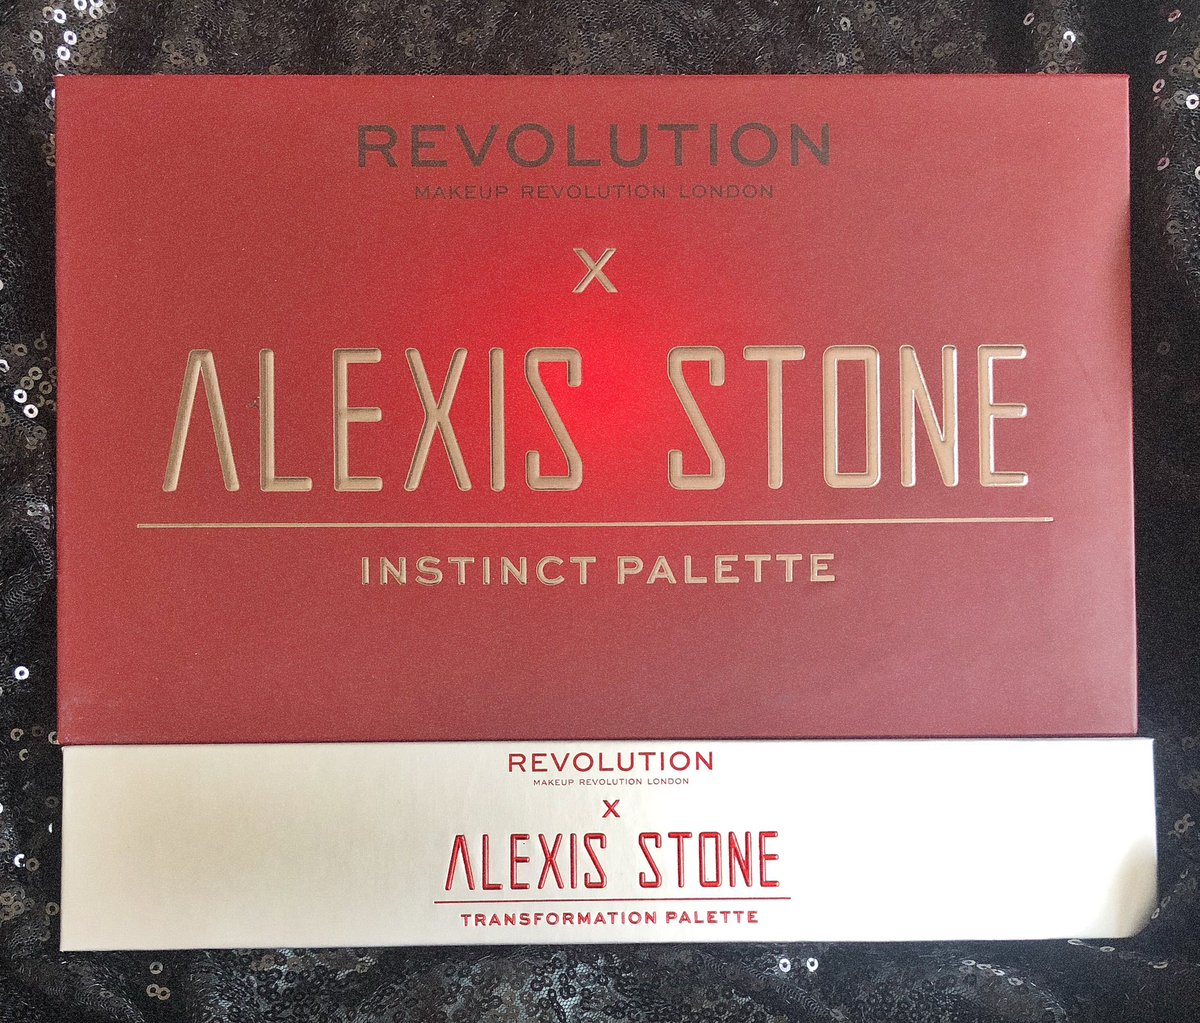 oh oops i just became obsessed. needed instinct from the get go but after seeing those shimmers in action i had to grab that too @MakeupRVLTN @ElliotRentz #RevolutionXAlexisStone pic.twitter.com/z5iDyRPnxg